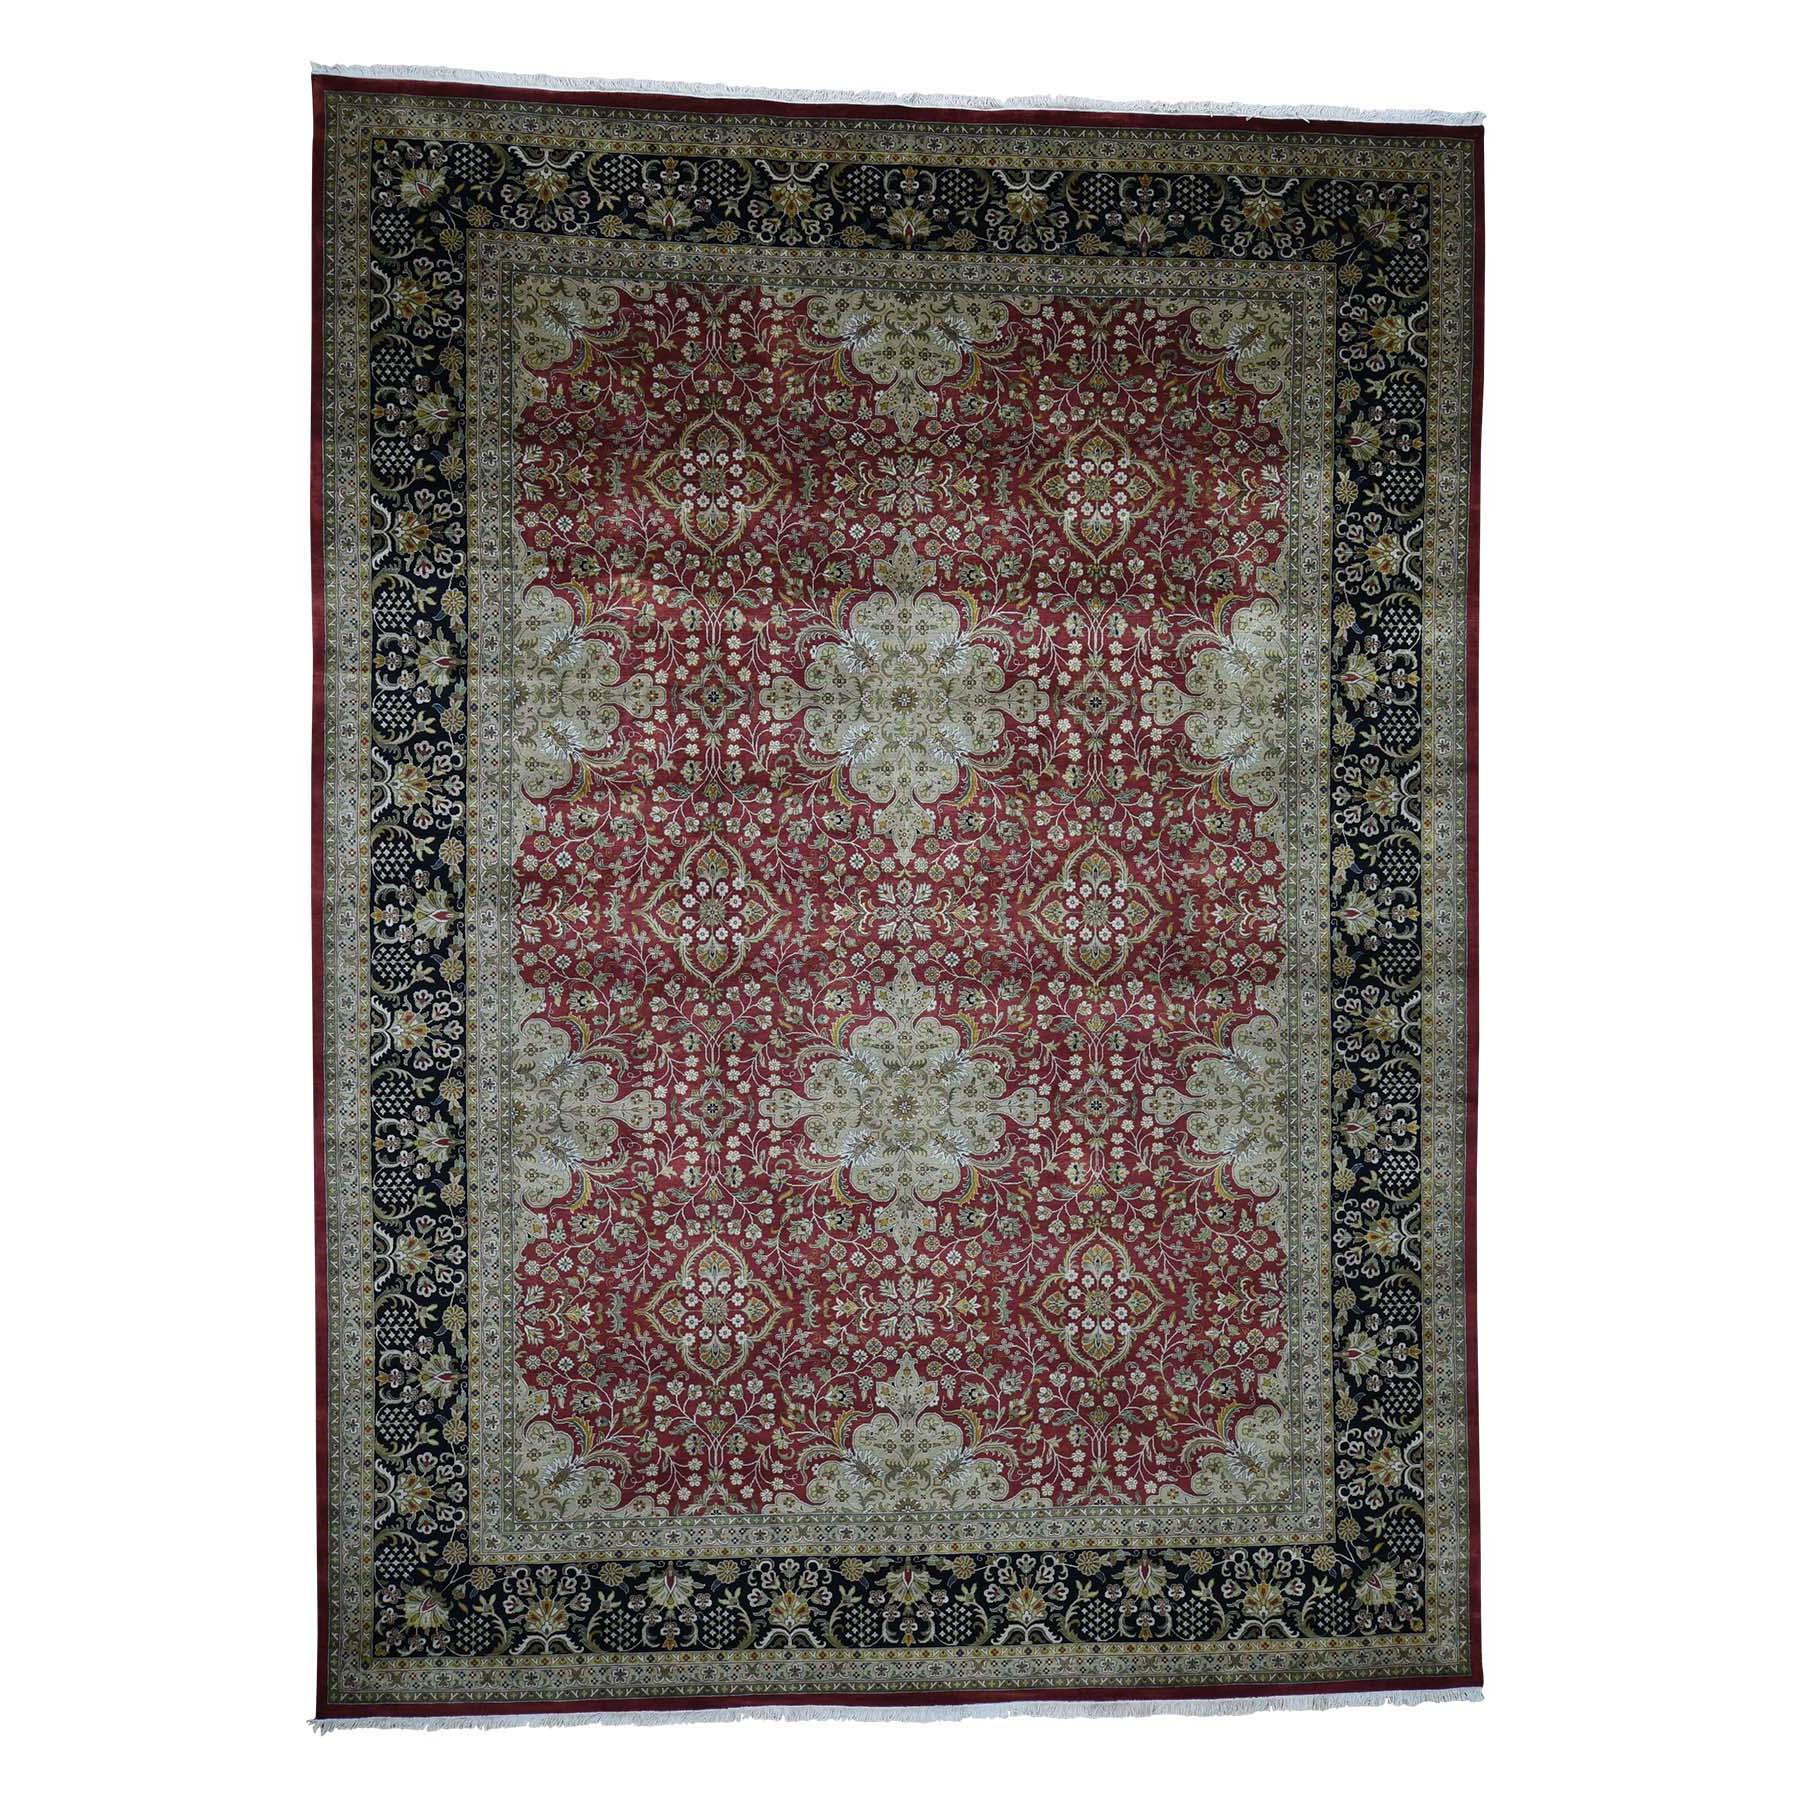 "10'1""X13'8"" New Zealand Wool 300 Kpsi Kashan Revival Hand-Knotted Rug moadba79"